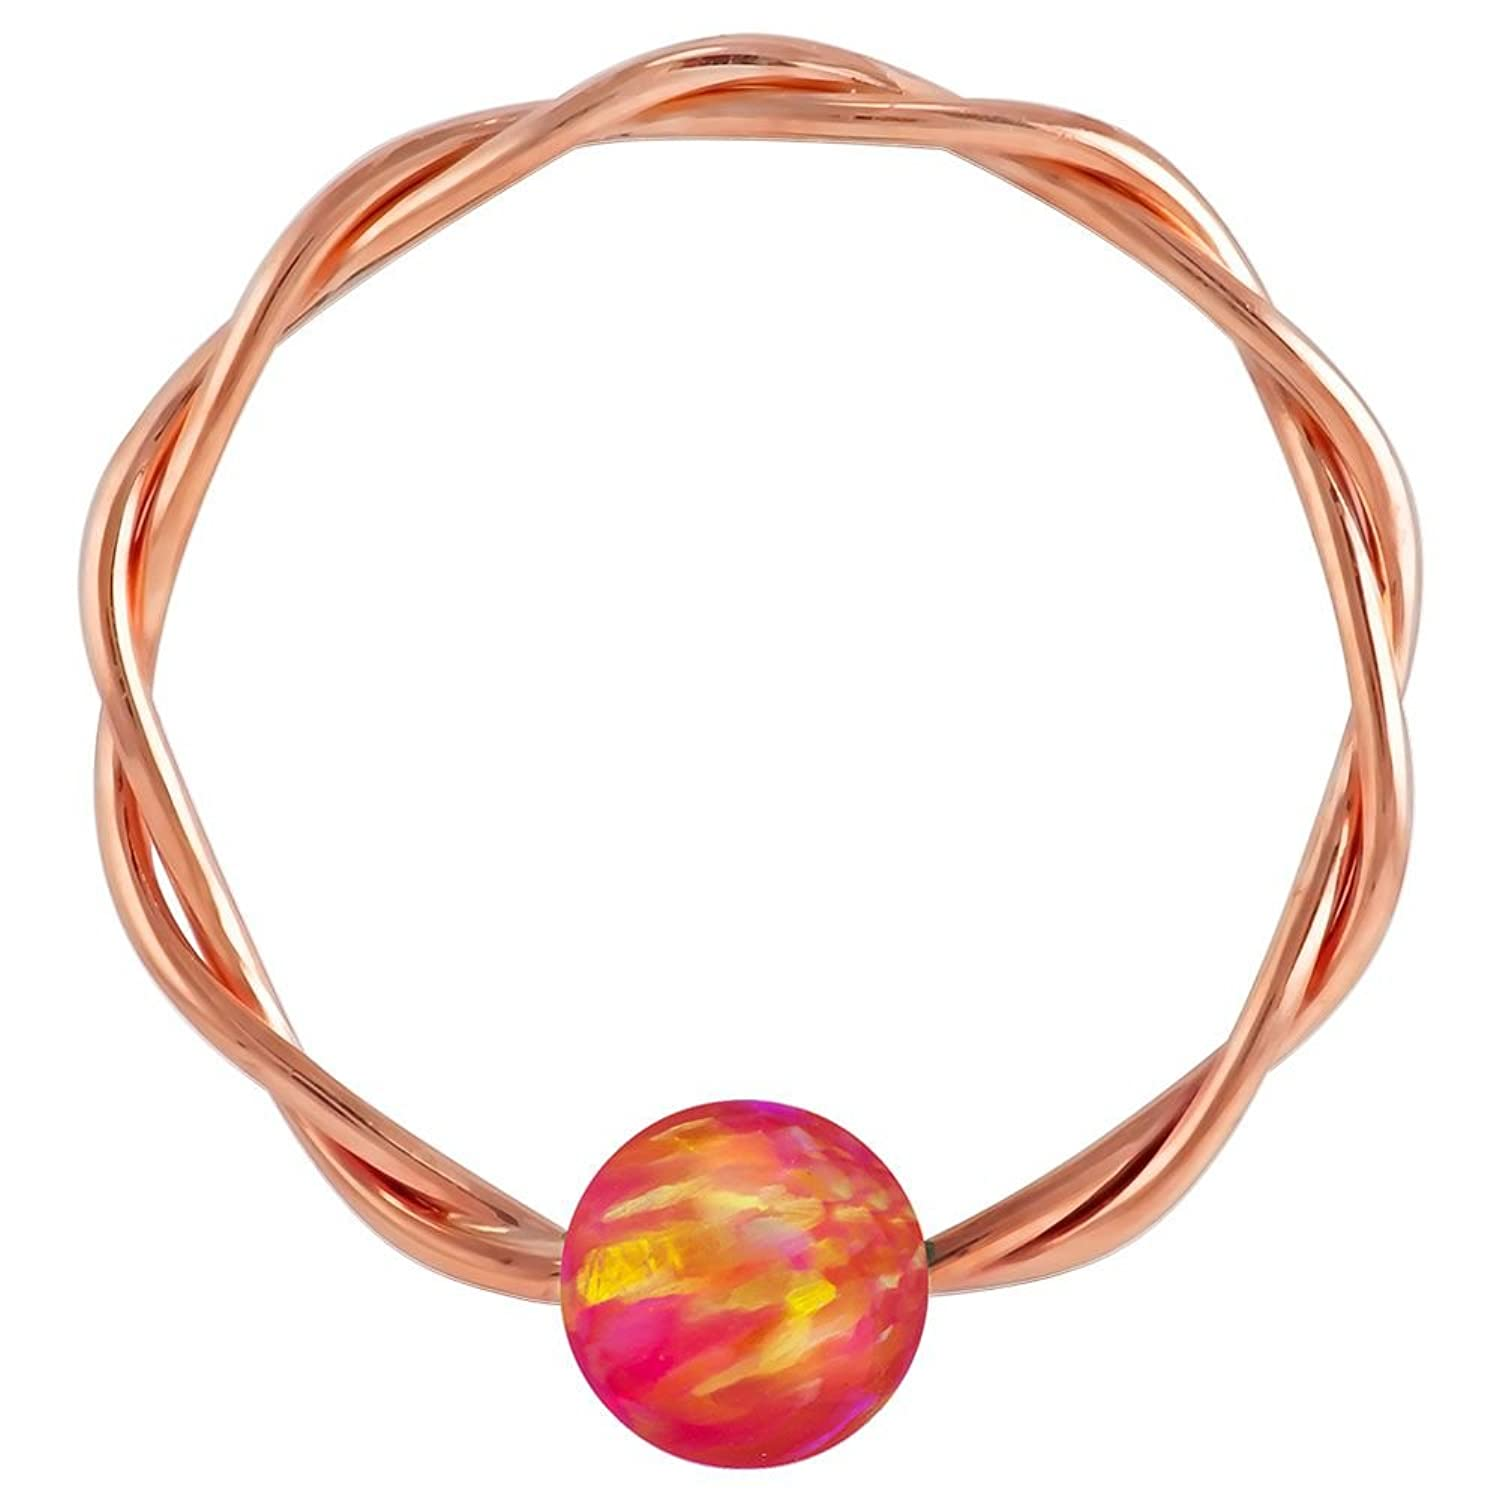 20 Gauge - Pink Opal Solid 14kt Rose Gold Twisted Captive Bead Ring - 4mm Opal Ball changxing jewelry 6x8mm 14kt